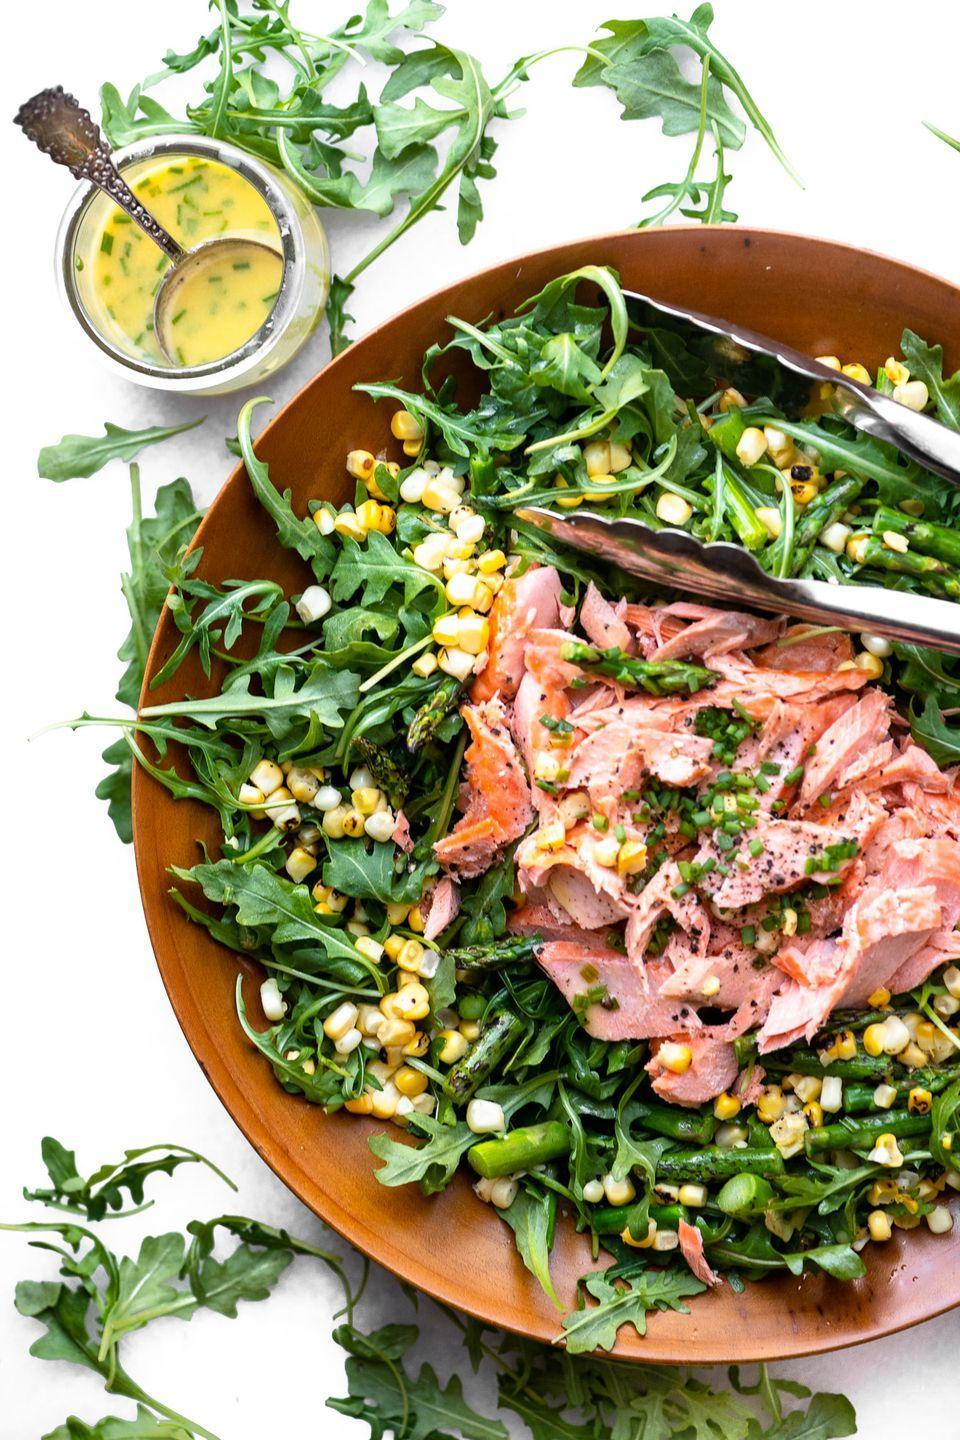 "<p>Looking for a refreshing salad this summer? Try this salmon salad that's bursting with flavor from blistered fresh corn.</p><p><strong>Get the recipe from <a href=""https://theviewfromgreatisland.com/blistered-corn-and-asparagus-salad-with-salmon-recipe/"" rel=""nofollow noopener"" target=""_blank"" data-ylk=""slk:The View from Great Island"" class=""link rapid-noclick-resp"">The View from Great Island</a>.</strong></p><p><strong><a class=""link rapid-noclick-resp"" href=""https://go.redirectingat.com?id=74968X1596630&url=https%3A%2F%2Fwww.walmart.com%2Fsearch%2F%3Fquery%3Dtongs&sref=https%3A%2F%2Fwww.thepioneerwoman.com%2Ffood-cooking%2Fmeals-menus%2Fg35993911%2Fbest-corn-recipes%2F"" rel=""nofollow noopener"" target=""_blank"" data-ylk=""slk:SHOP TONGS"">SHOP TONGS</a><br></strong></p>"